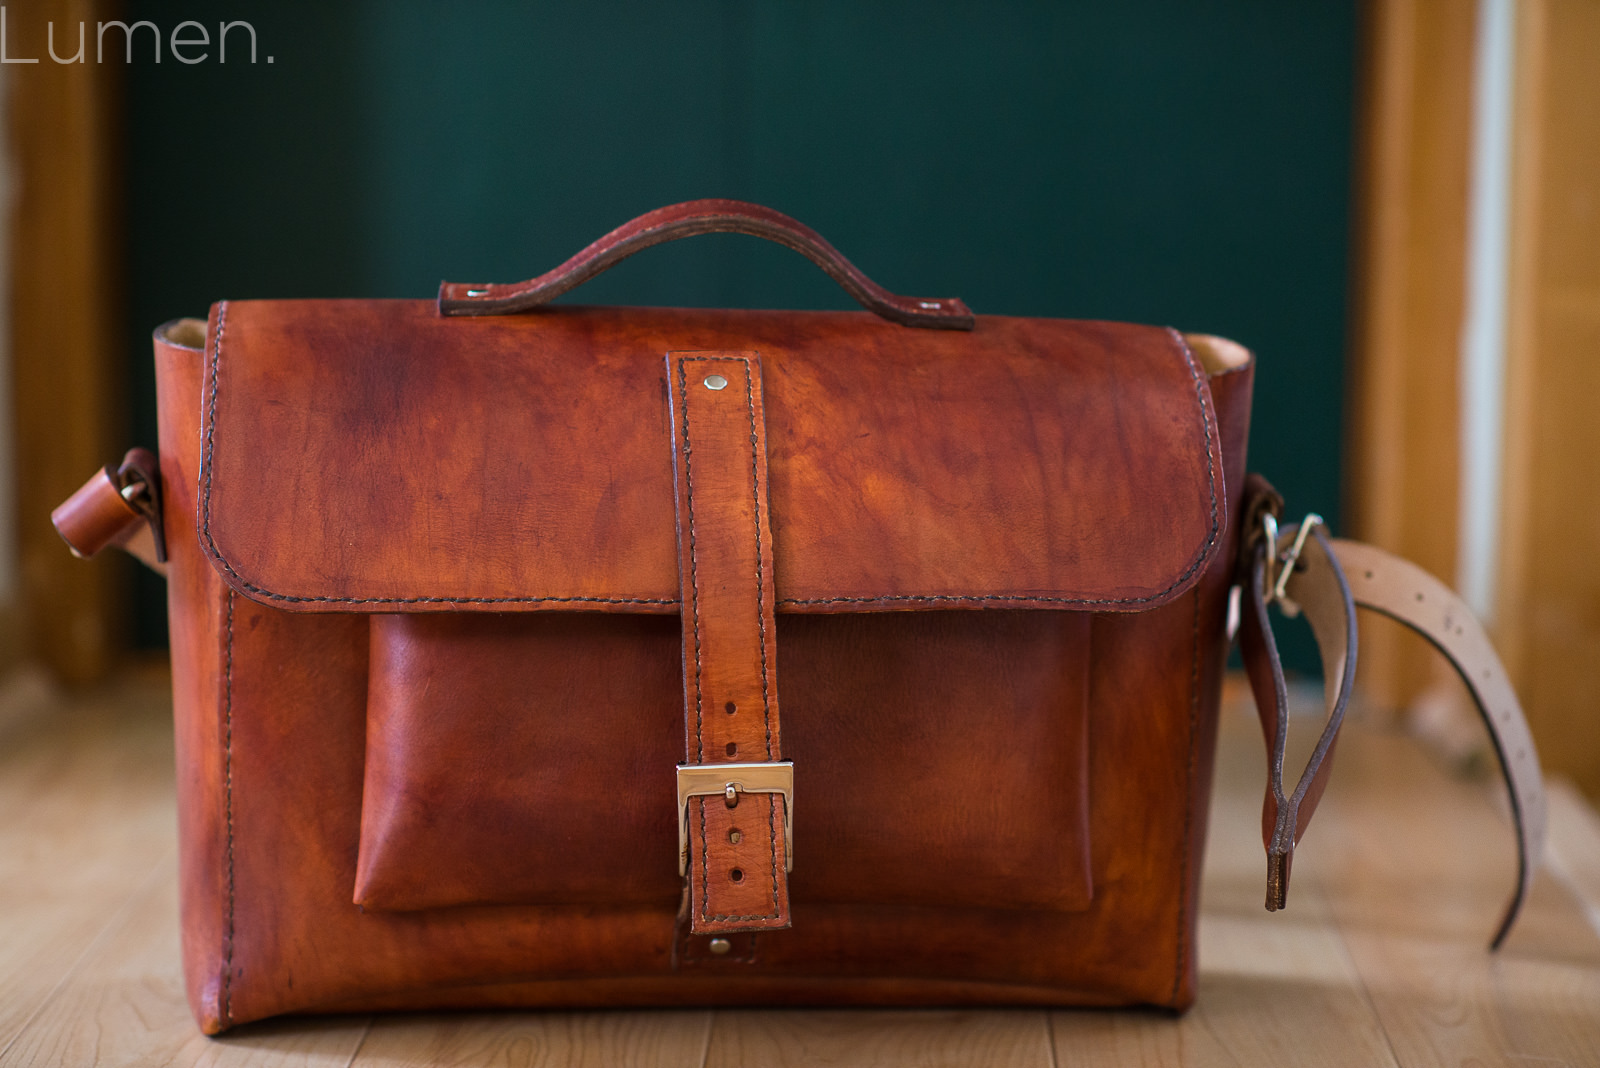 lumen photography, leather, product photography, homemade